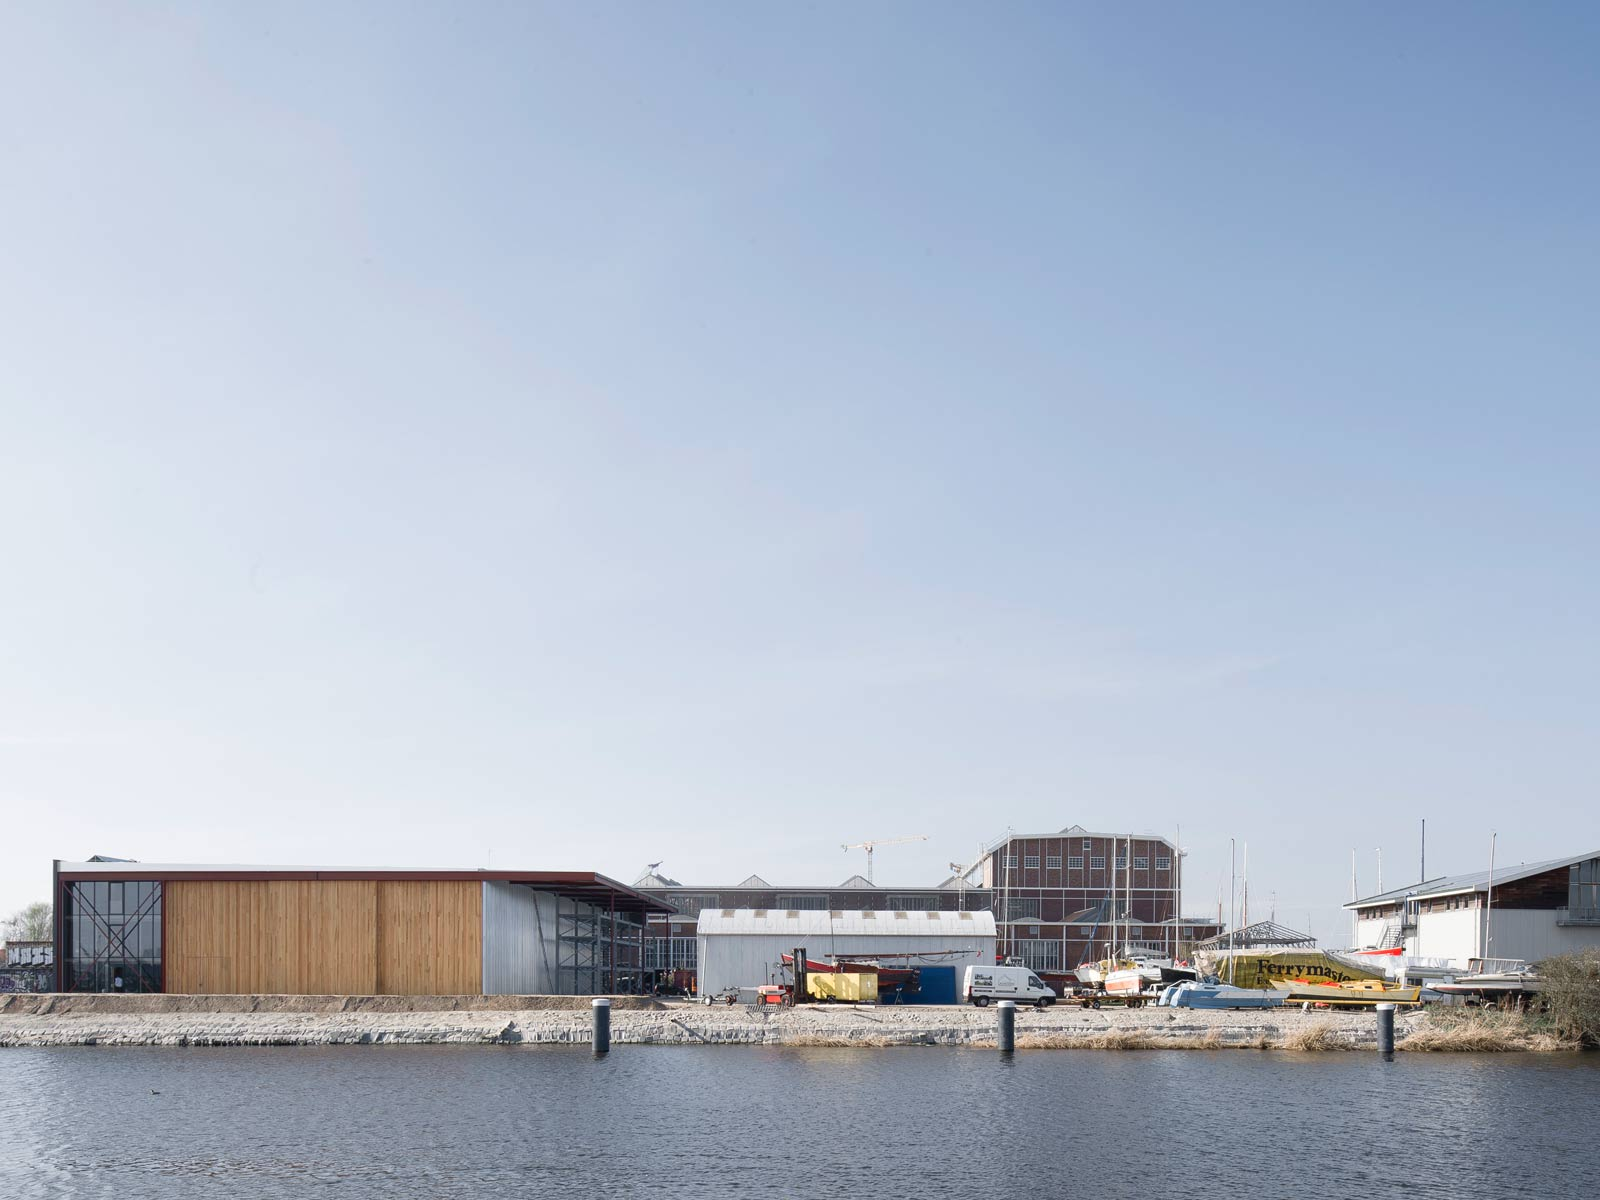 exterior photo across Zijkanaal I showing boat hangar along the quay and NDSM shipbuilding warehouse in the back